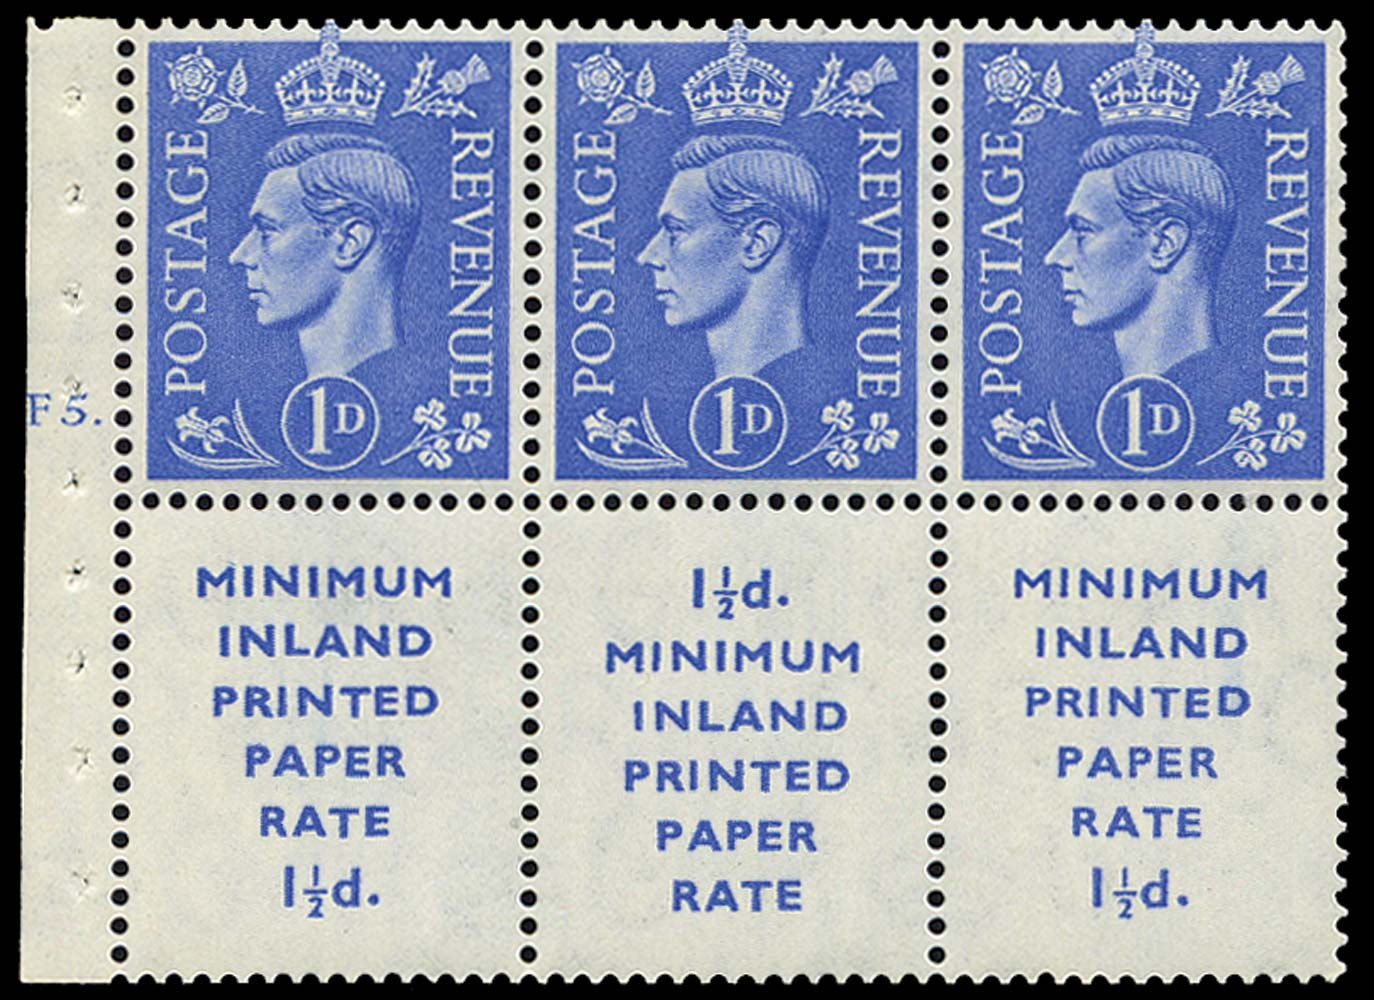 GB 1952  SG504d Booklet pane - Cylinder F5. (dot)